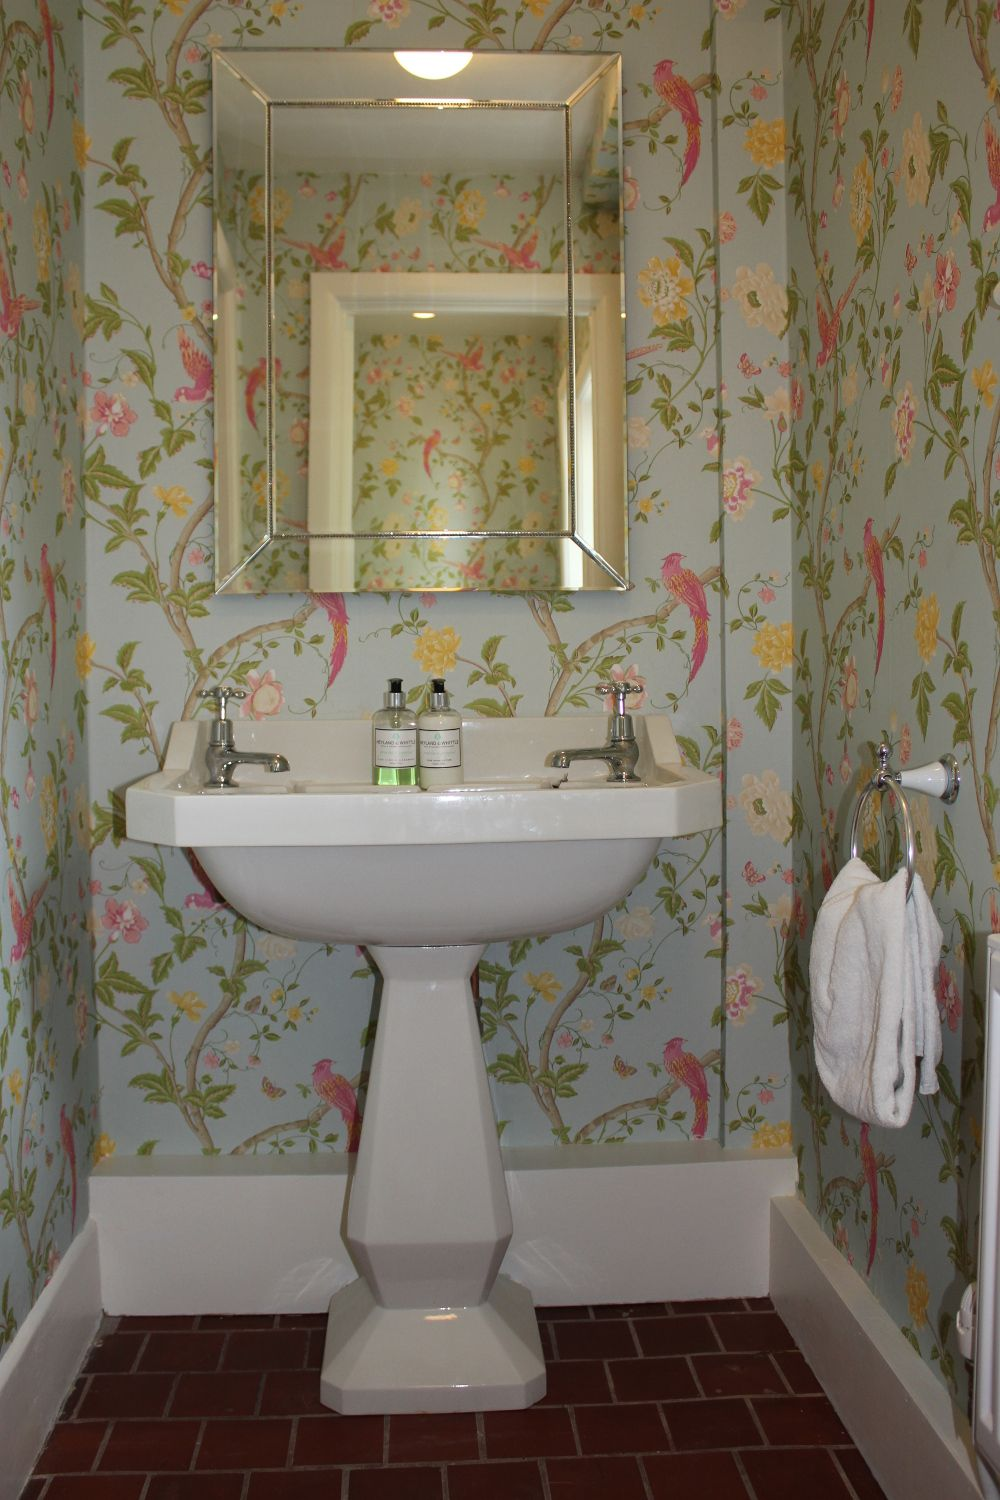 Cloakroom with Laura Ashley wallpaper Floral bathroom